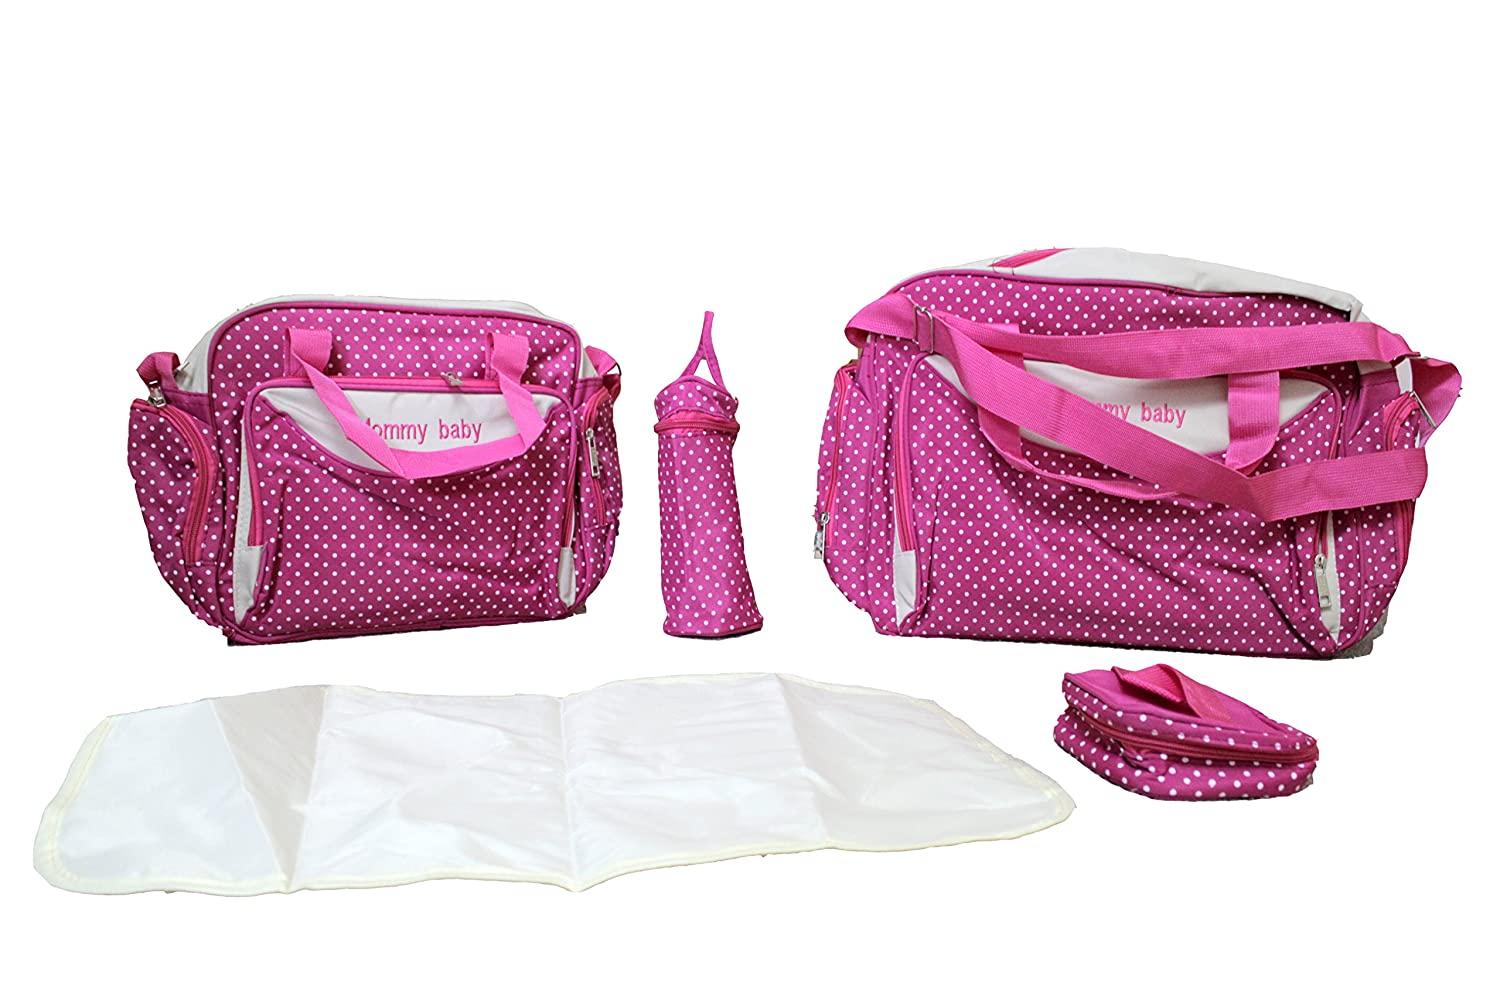 HOT PINK DESIGN ONE 5pcs Baby Nappy BLACK Changing Bags Set